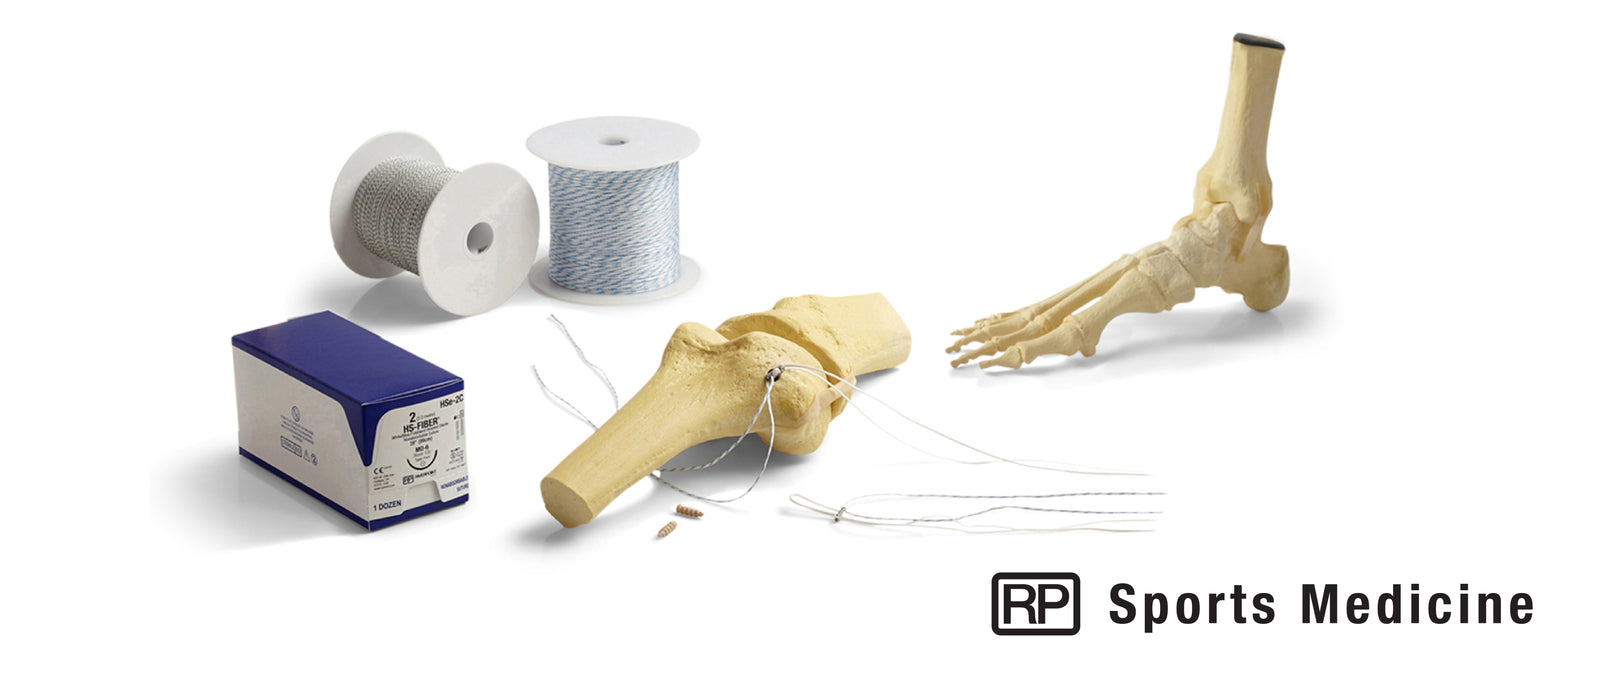 RP Sports Medicine  |  HS Fiber® Suture, Tape & Devices